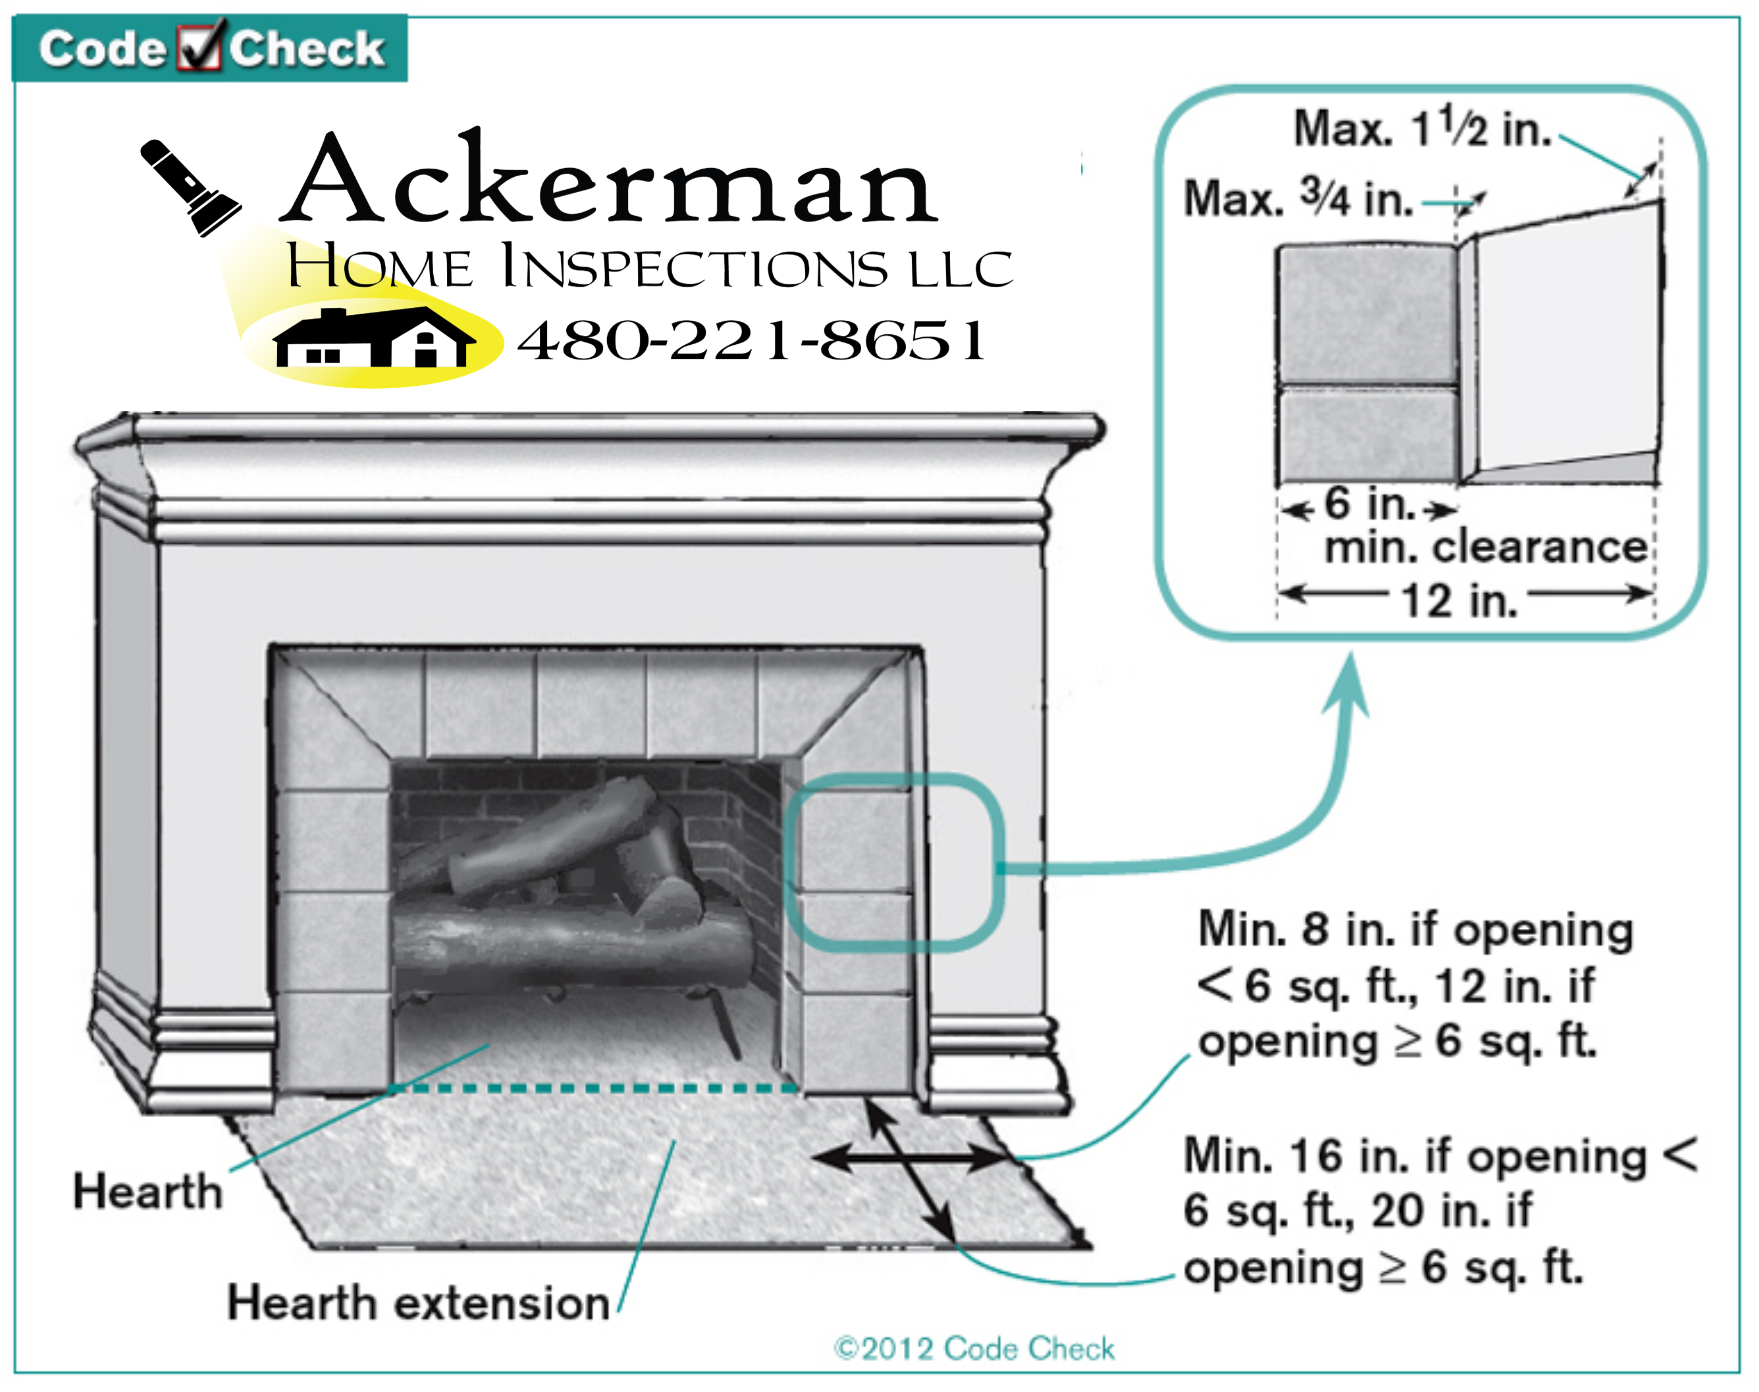 Many fireplaces don't meet minimum hearth requirements, which leads to a fire/safety hazard.